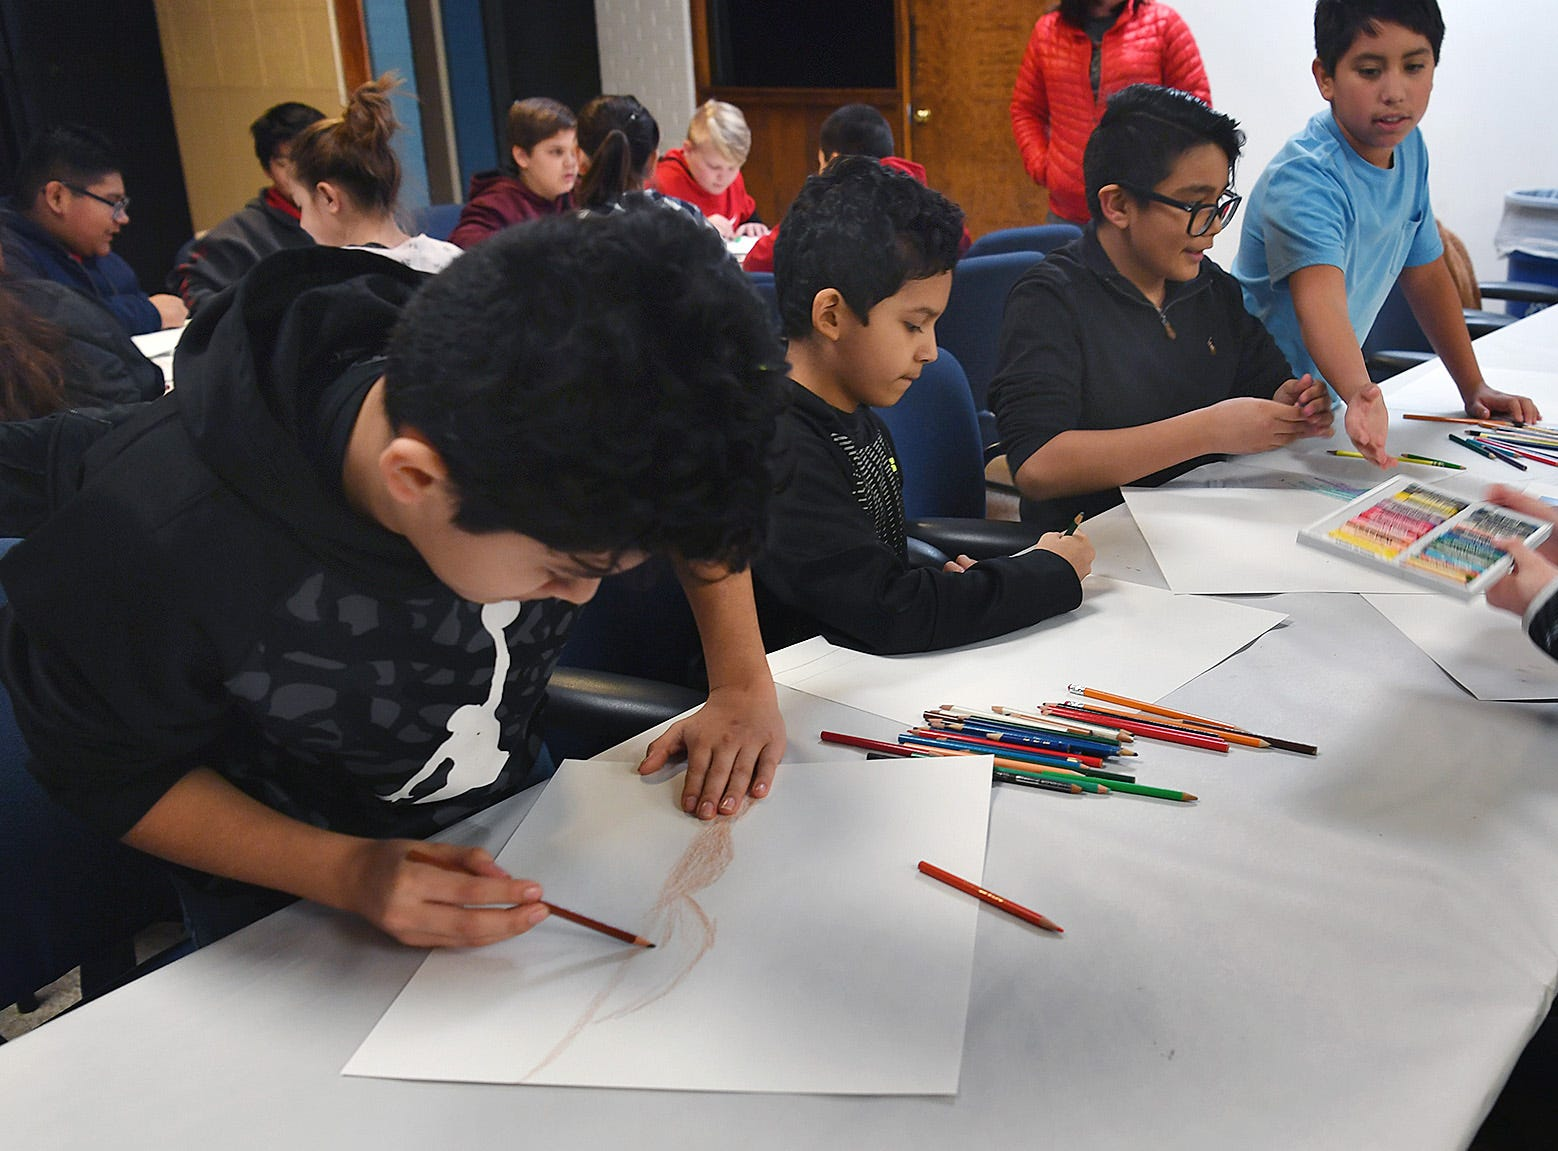 Olney Elementary fifth graders create art projects during a field trip to Wichita Falls Friday.